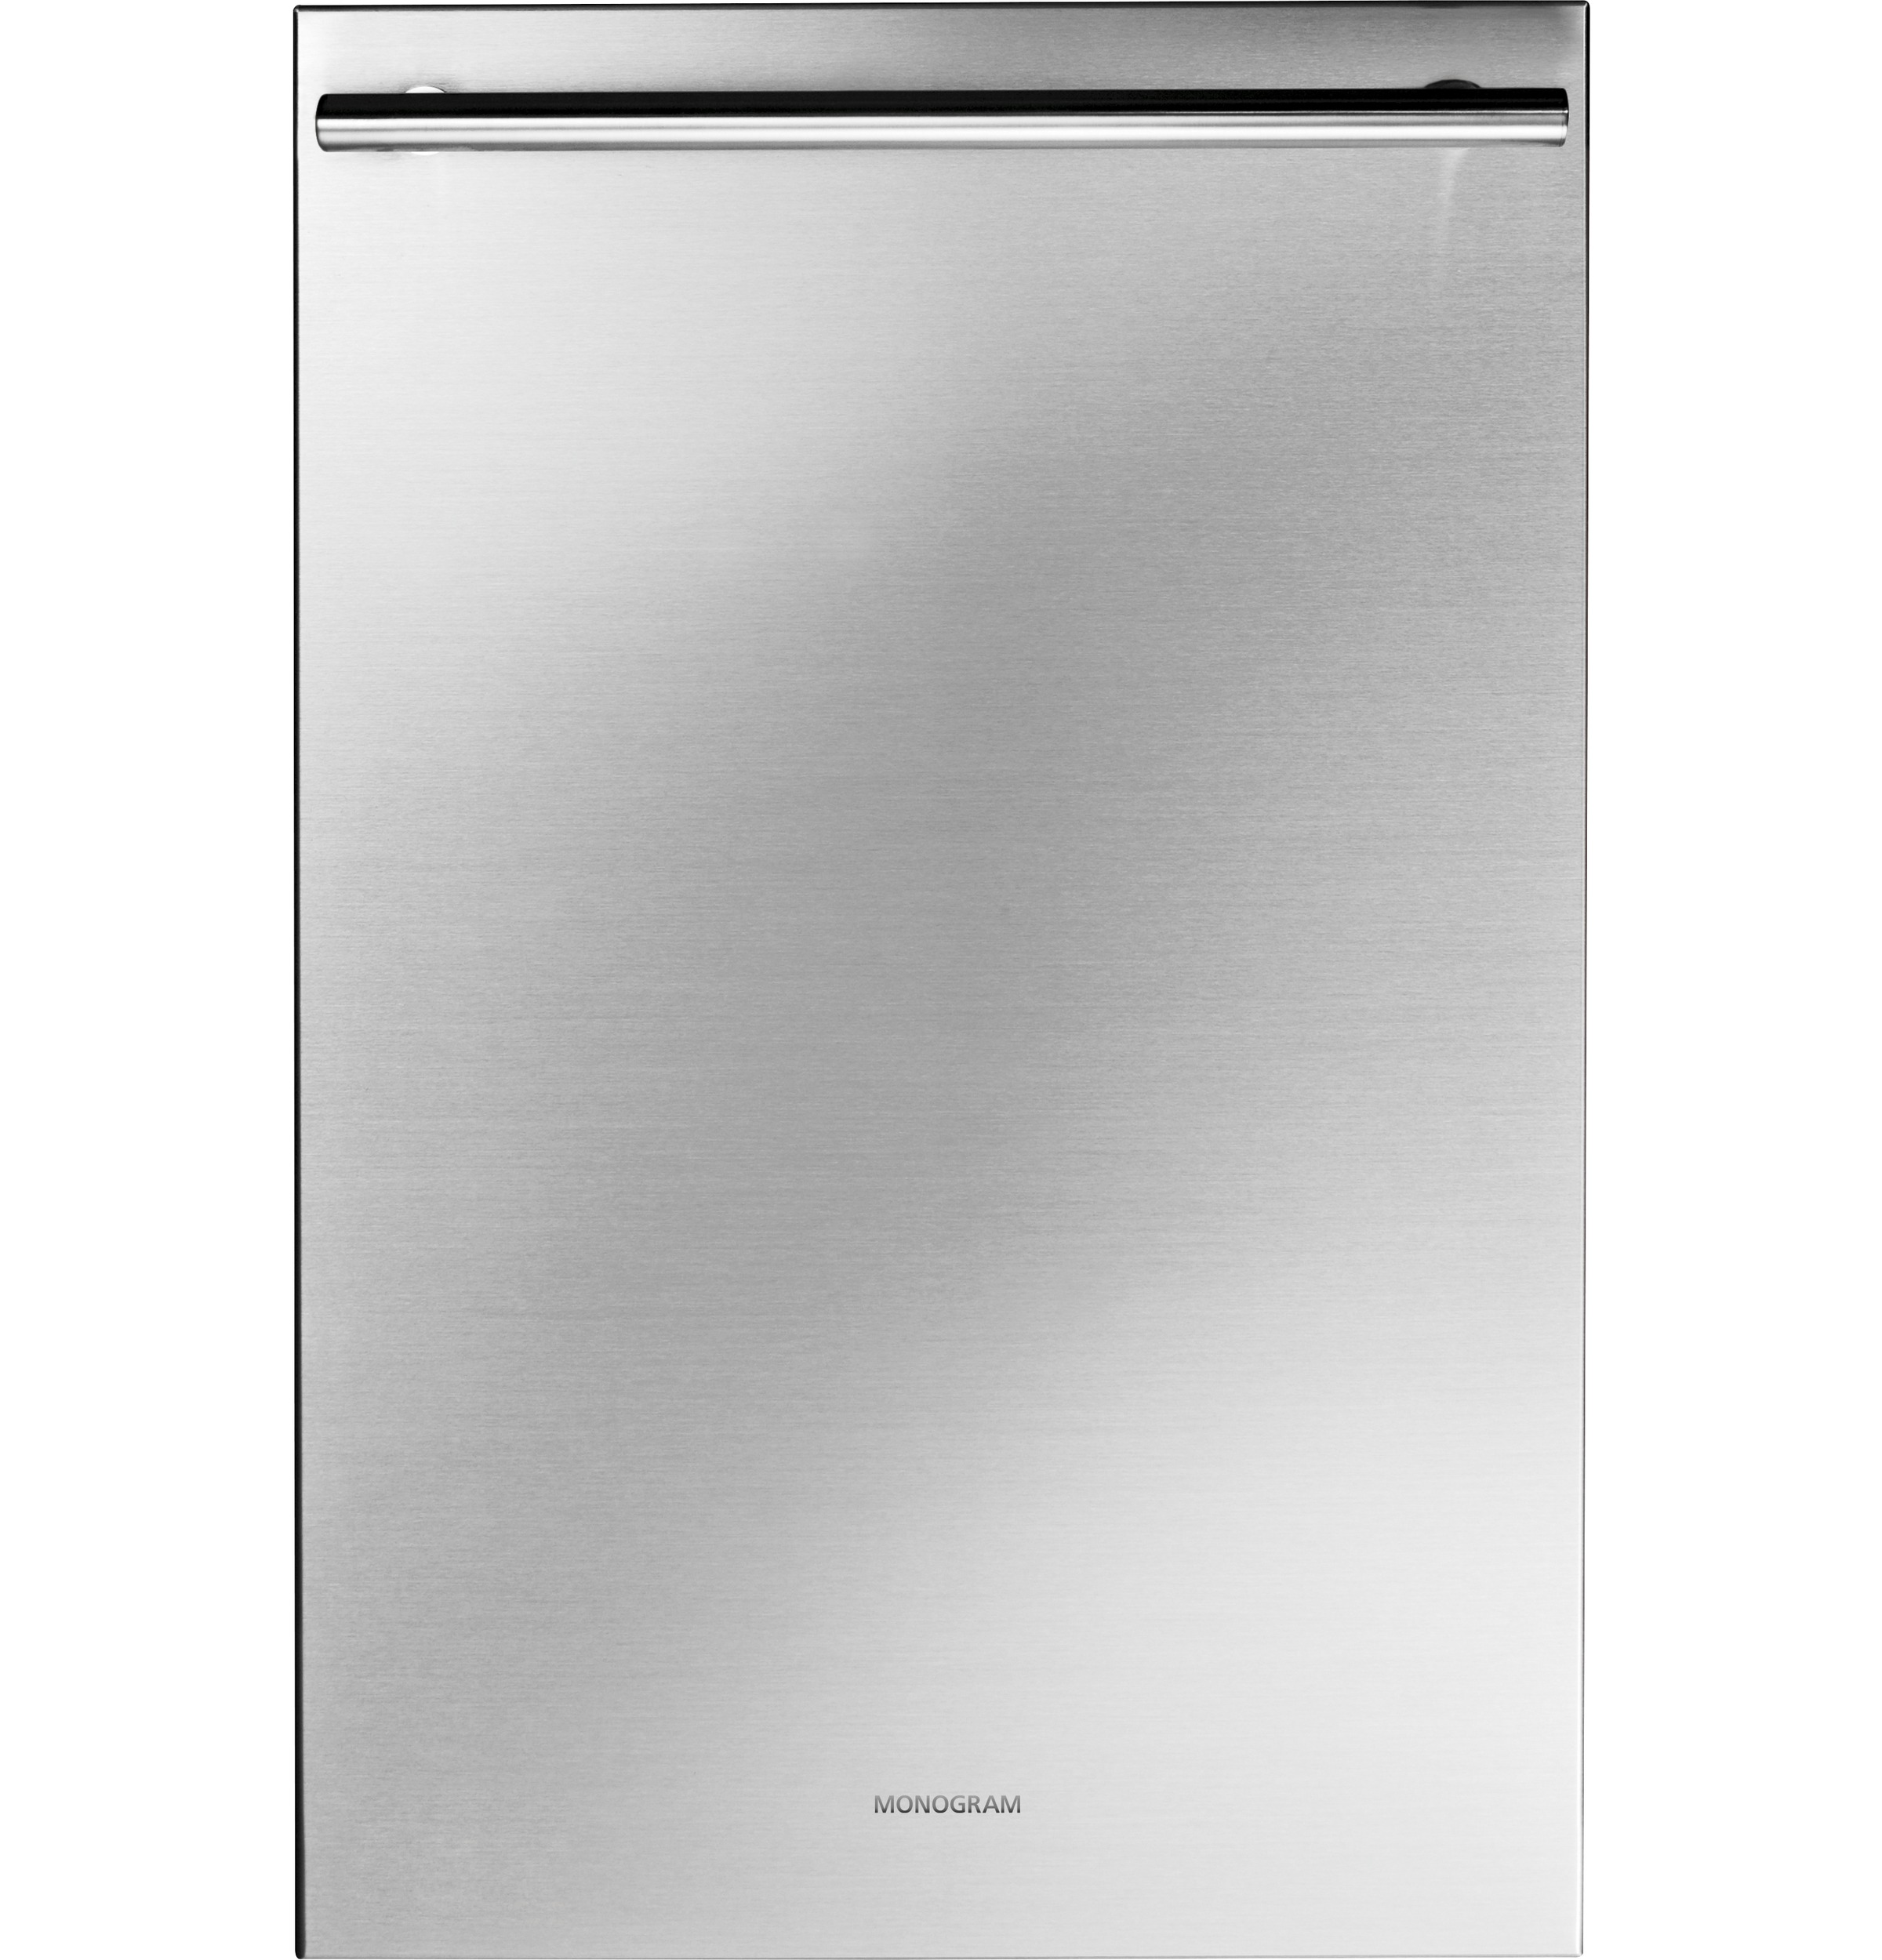 "Monogram Monogram 18"" Dishwasher"